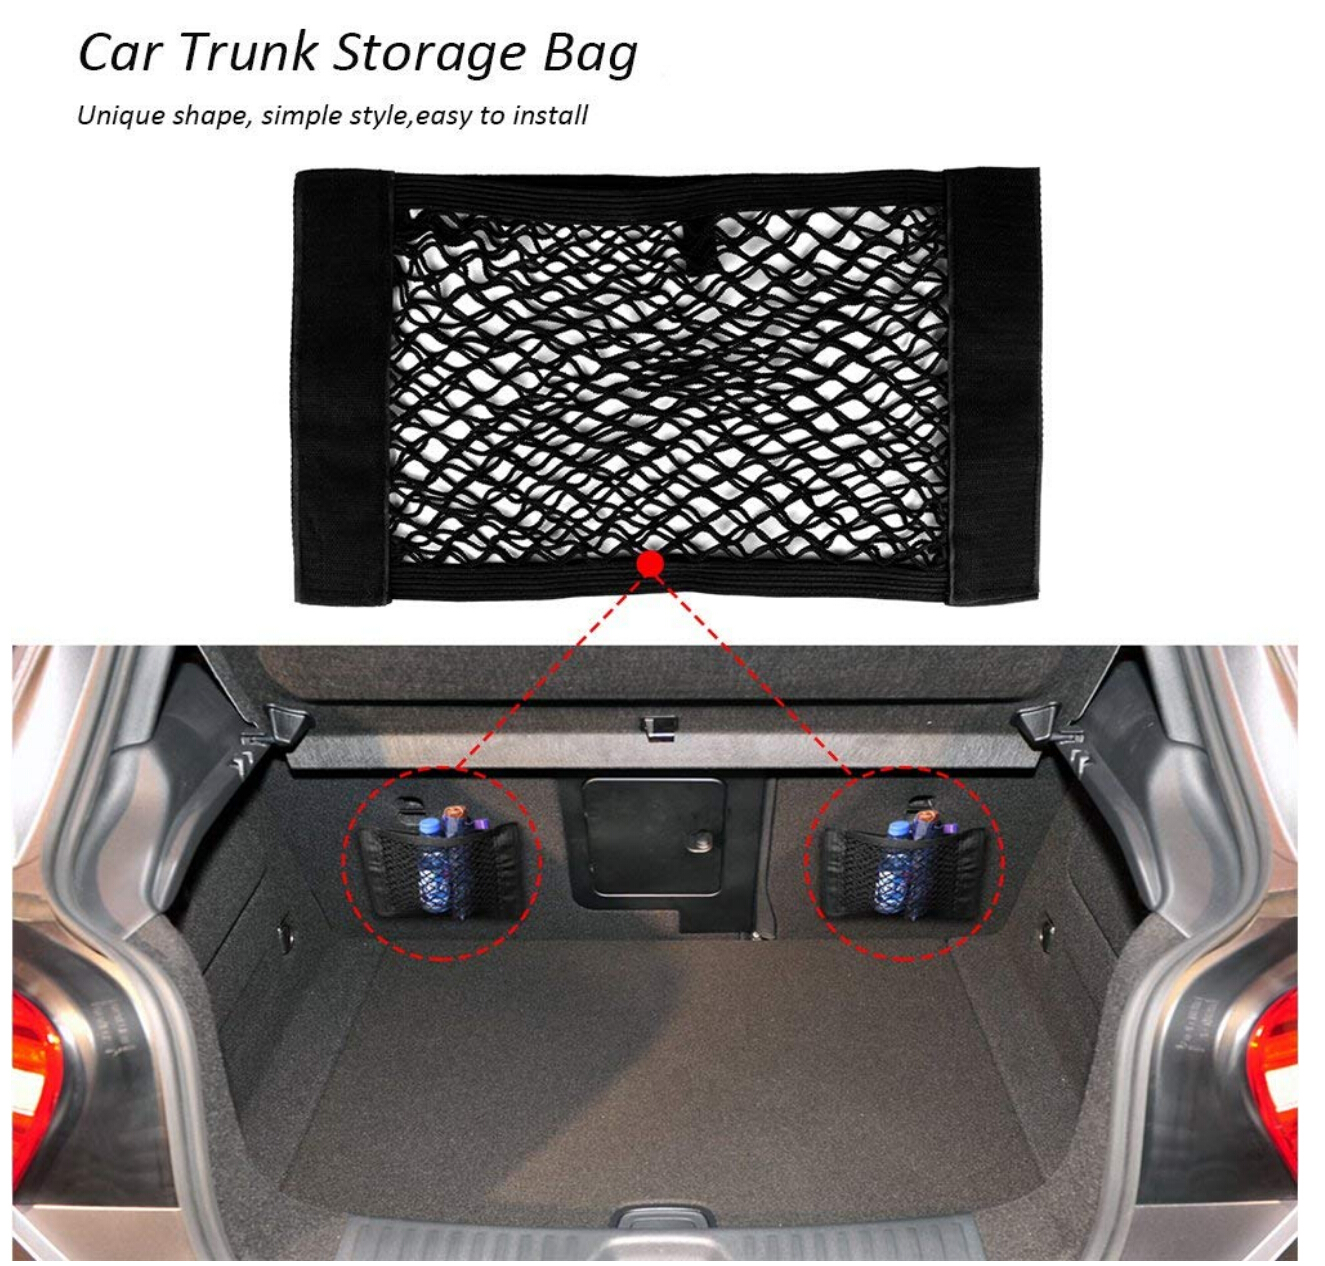 Image 2 - Car Trunk Box Storage Bag Mesh Net Bag Sticker For BMW F20 F21 F31 G31 F11 E61 E60 X1 F48 X2 F39 X3 G01 F25 E83 Accessories-in Car Stickers from Automobiles & Motorcycles